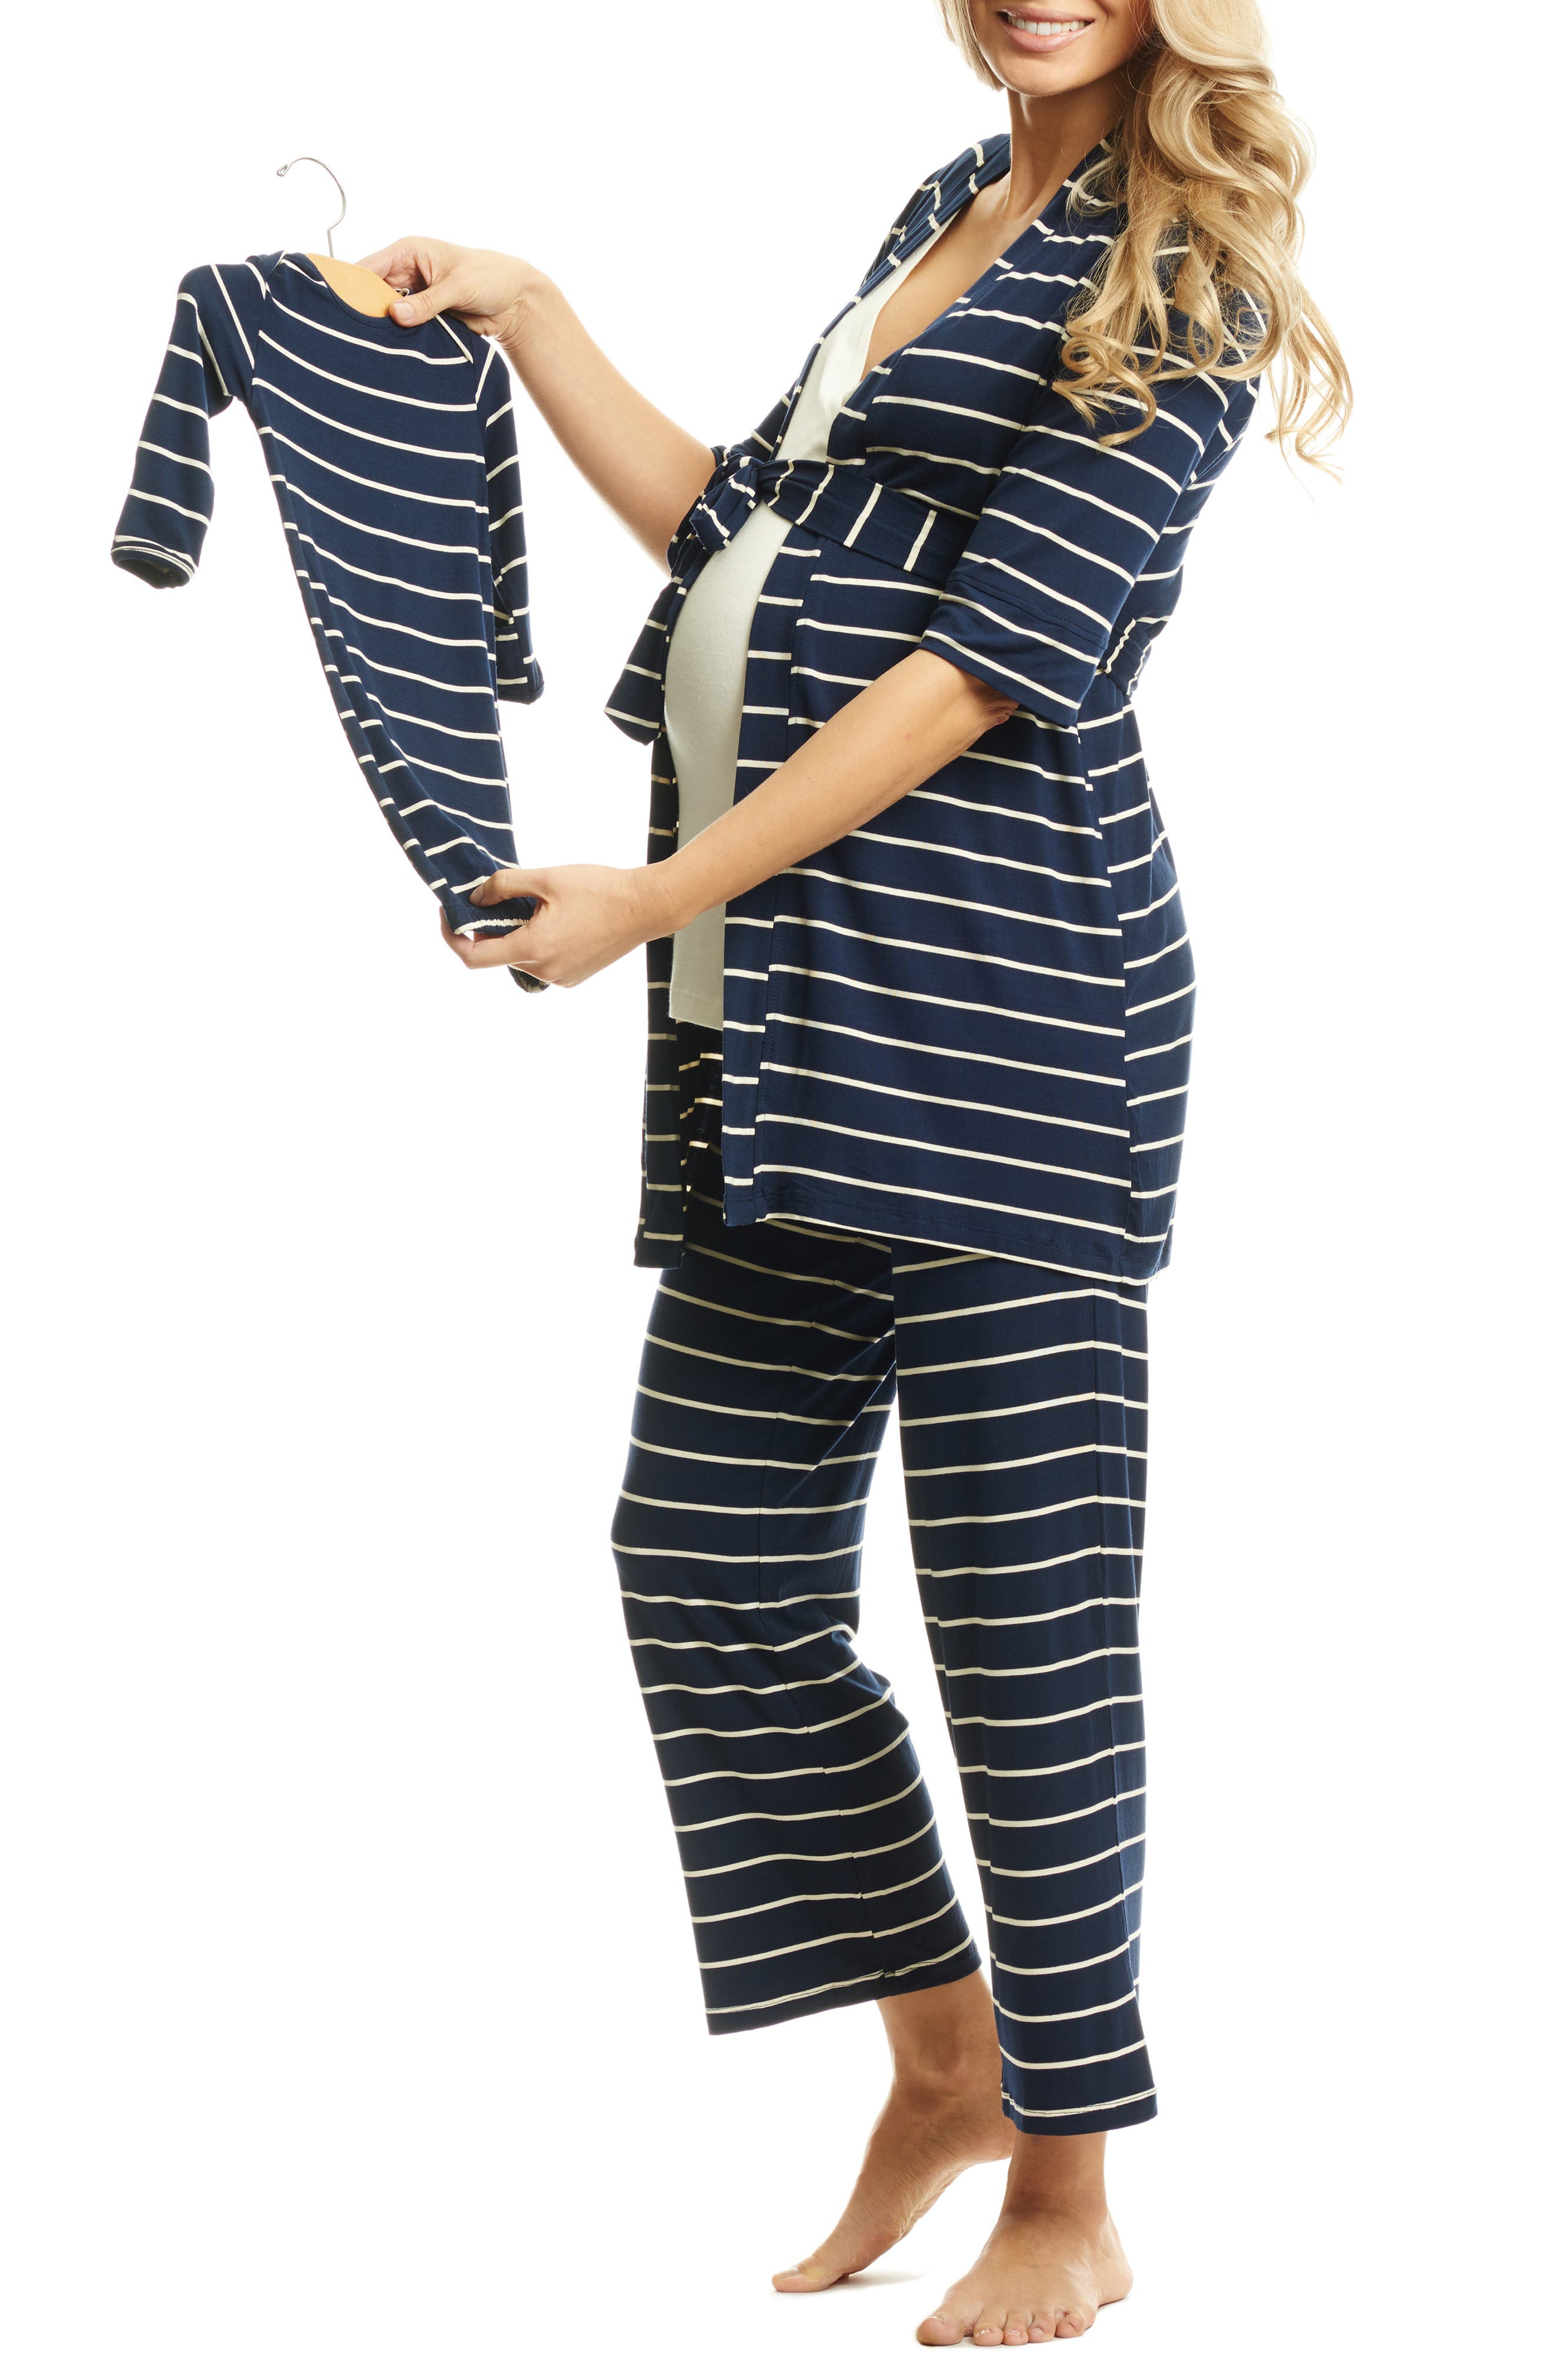 EVERLY GREY, Roxanne - During & After 5-Piece Maternity Sleepwear Set, Alternate thumbnail 3, color, NAVY